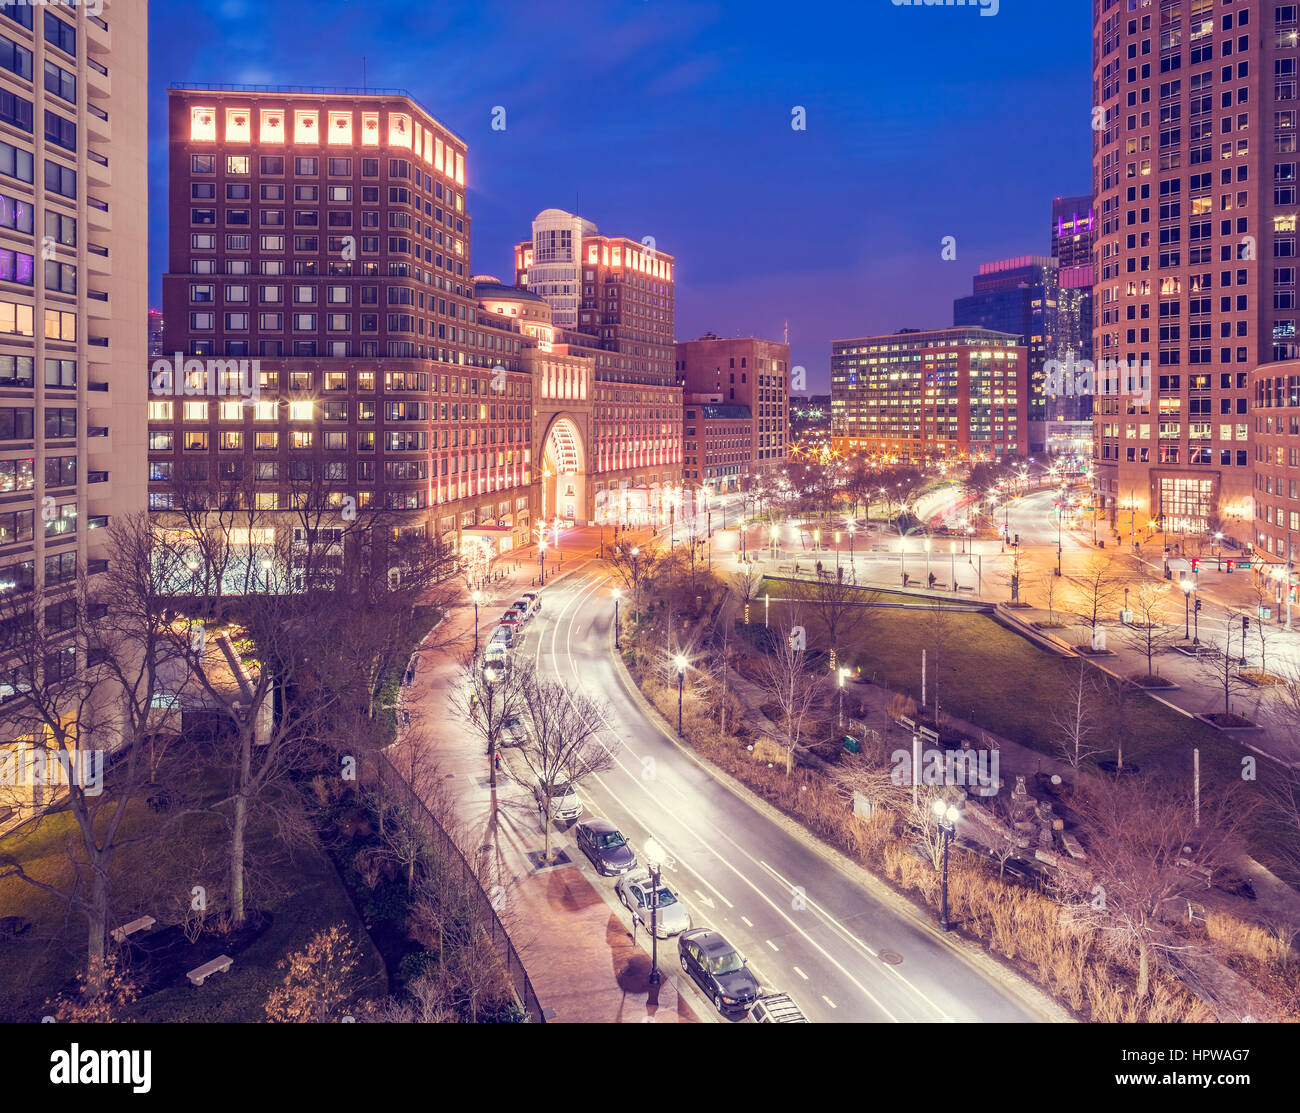 Boston in Massachusetts, USA at night in a cross processed photo. - Stock Image